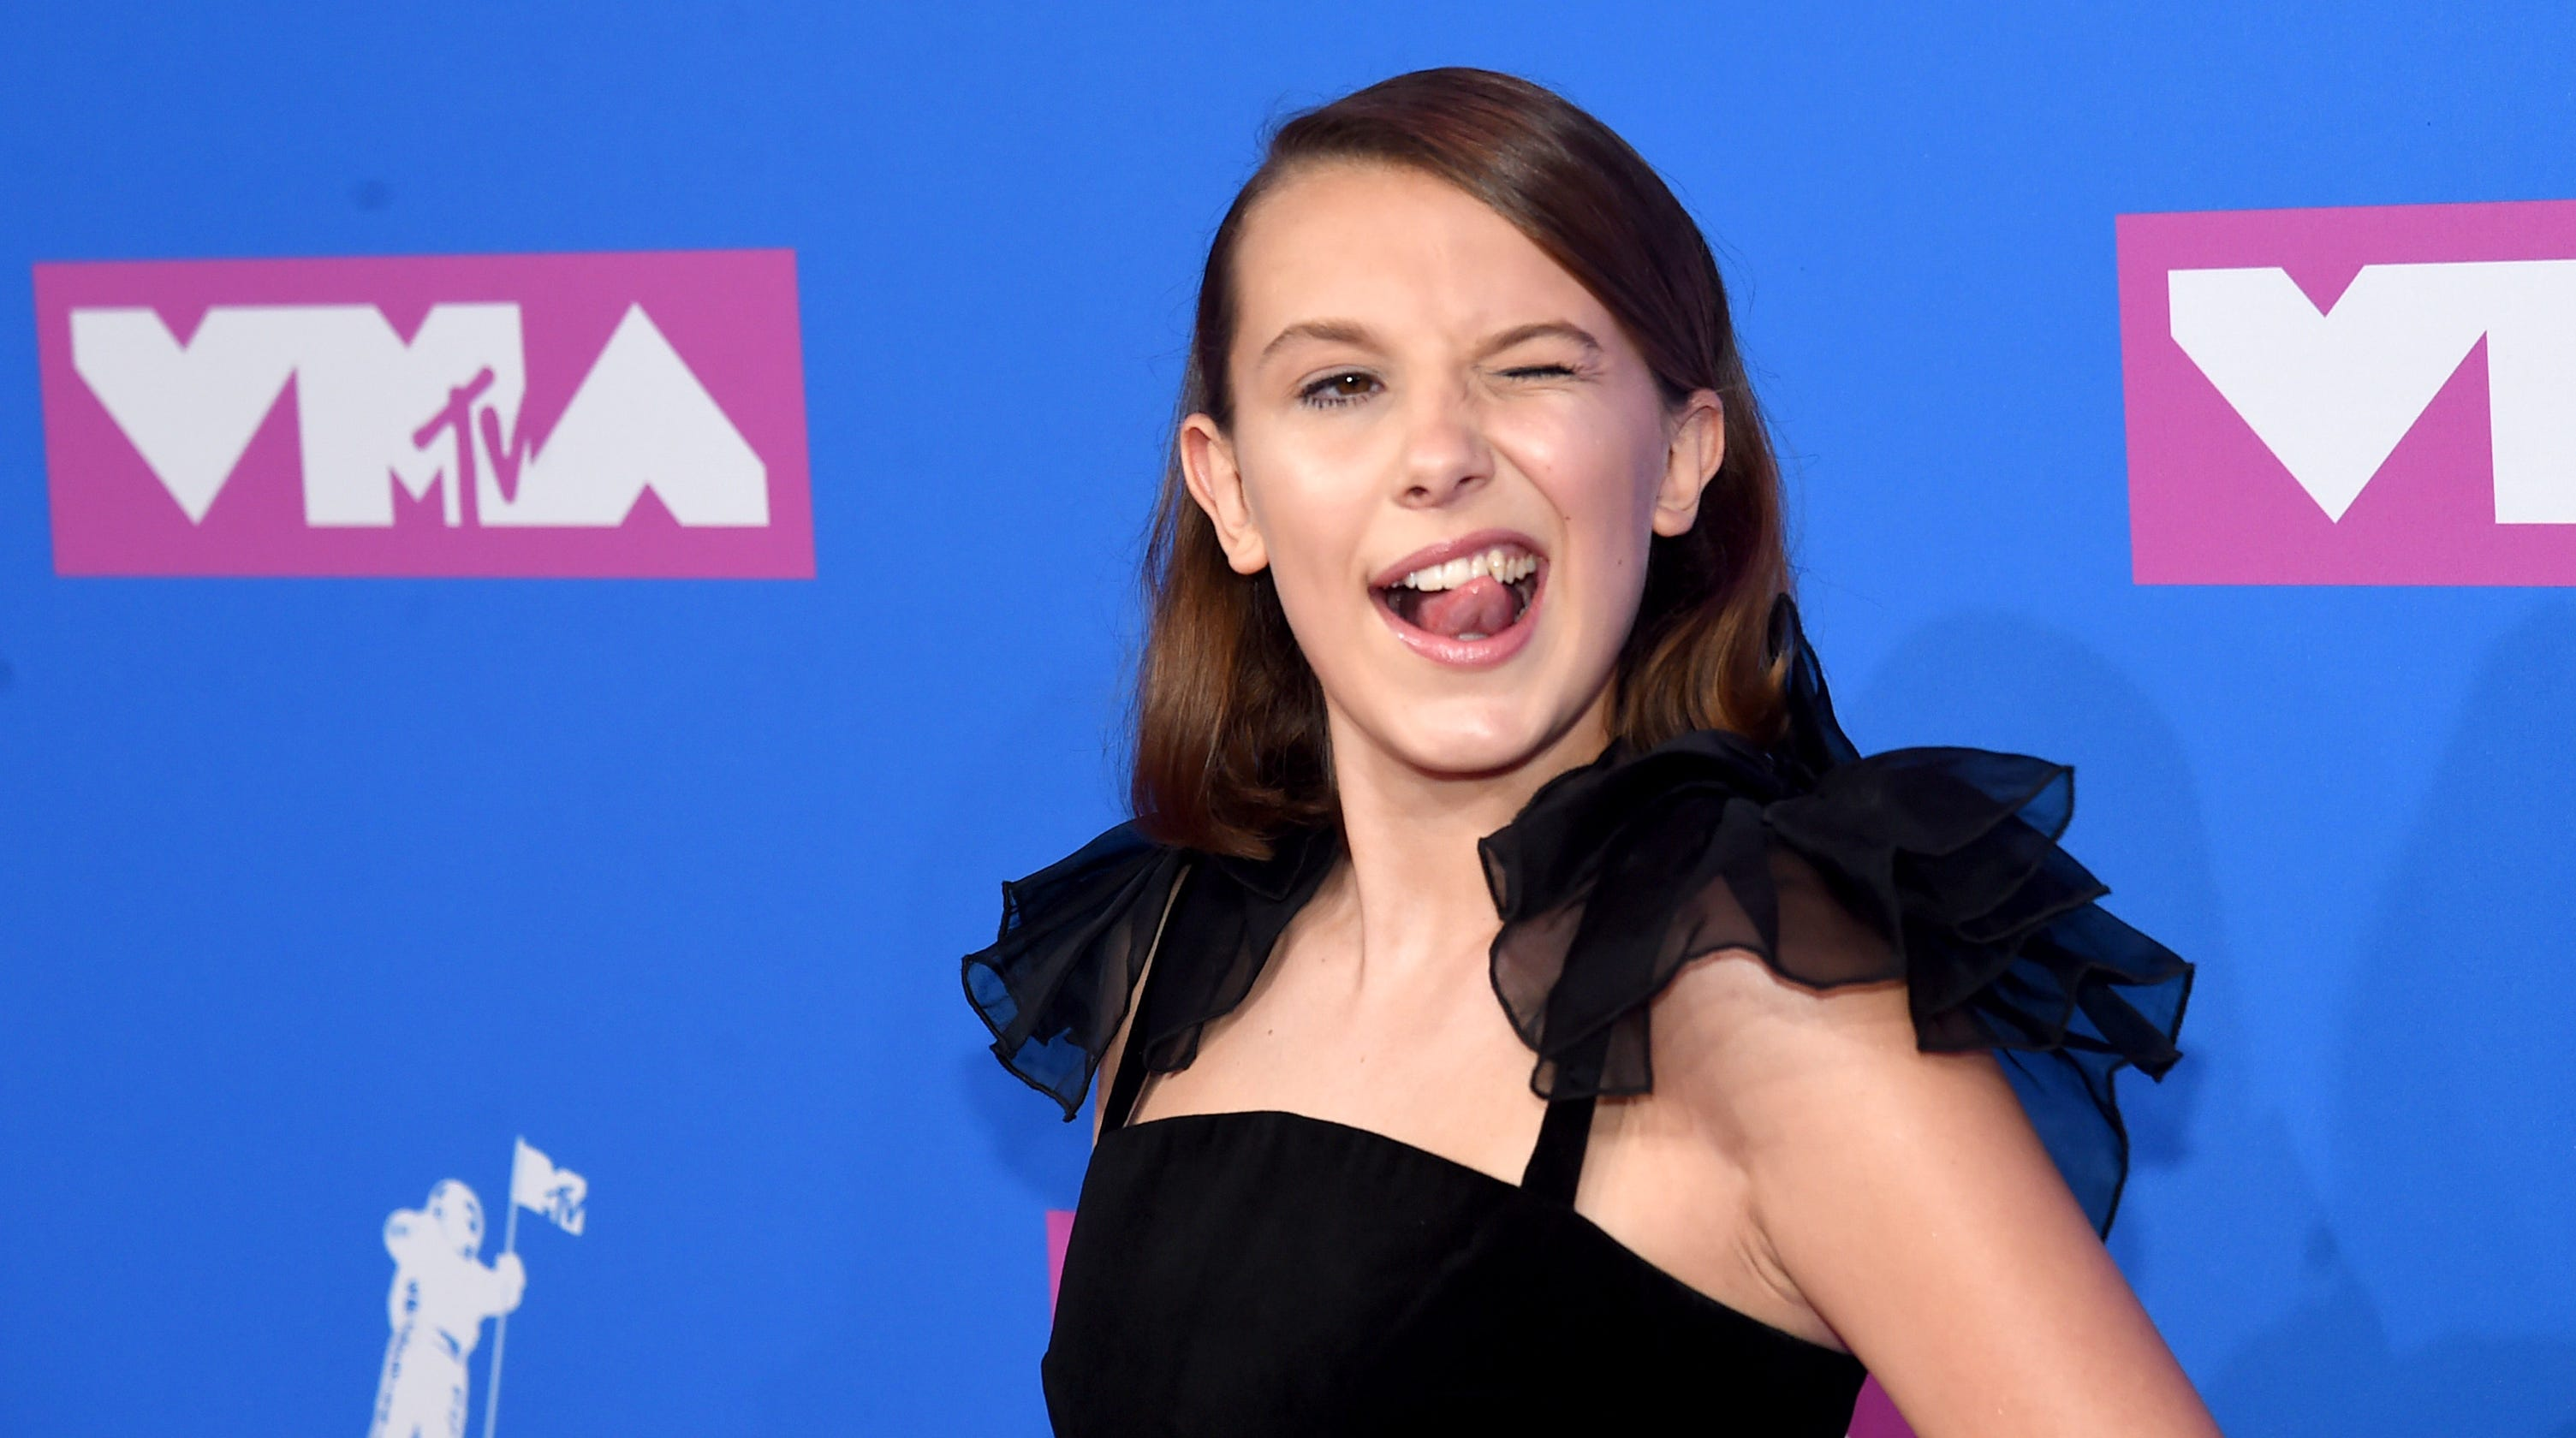 6578a76f6 Millie Bobby Brown to Instagram haters: If 'you don't like it... scroll  past it'